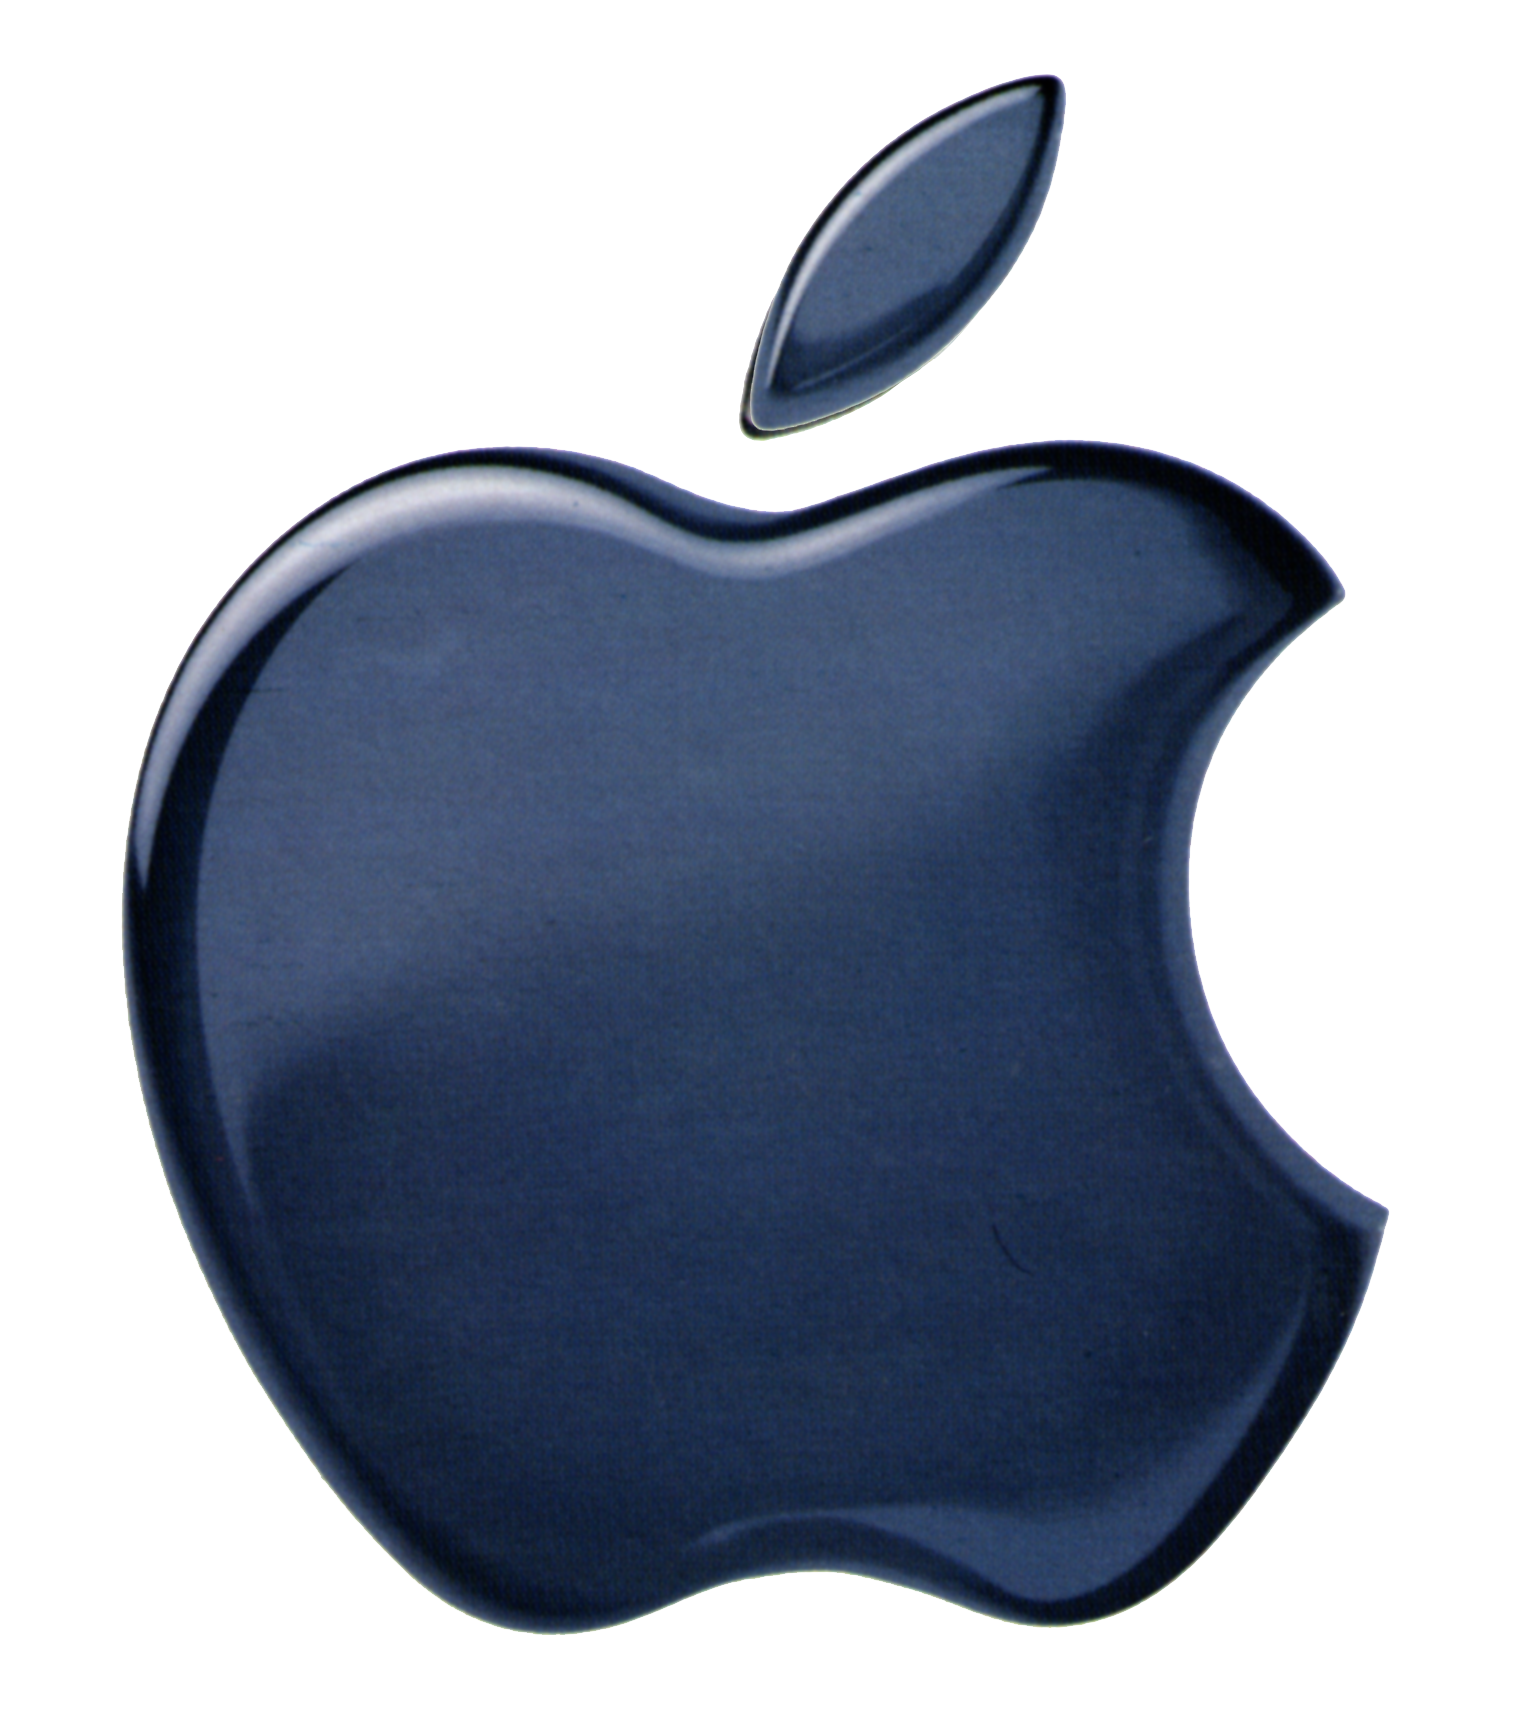 Apple logo vector apple logo black